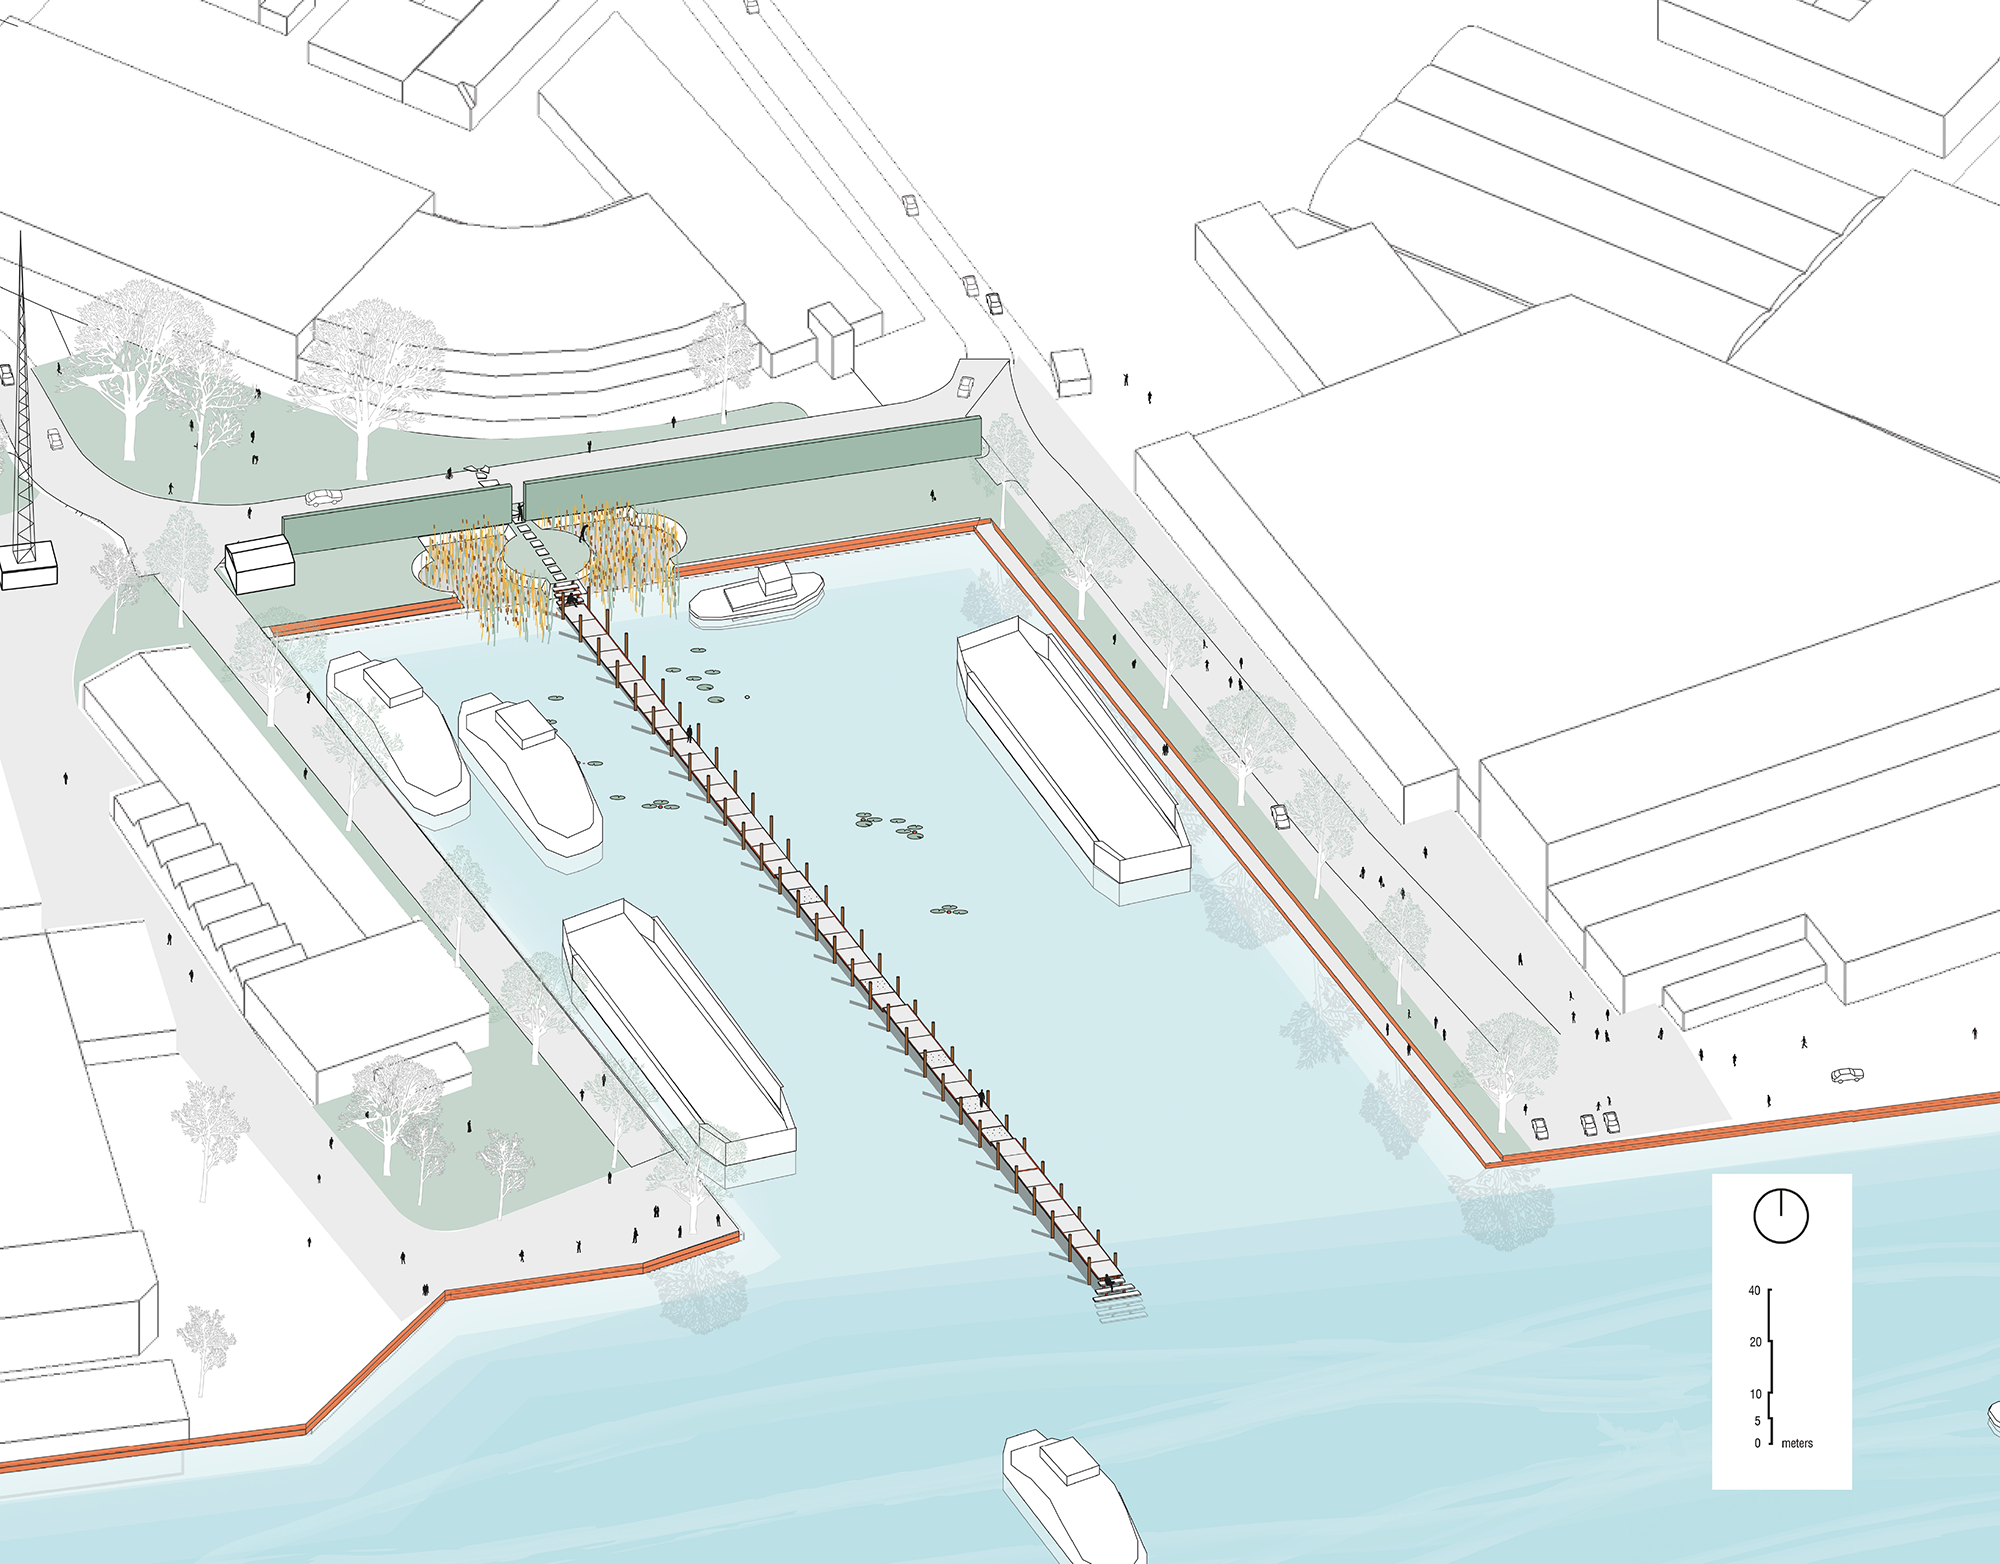 Figure 5: Resulting design proposal of a pier that evokes an individual sublime experience.